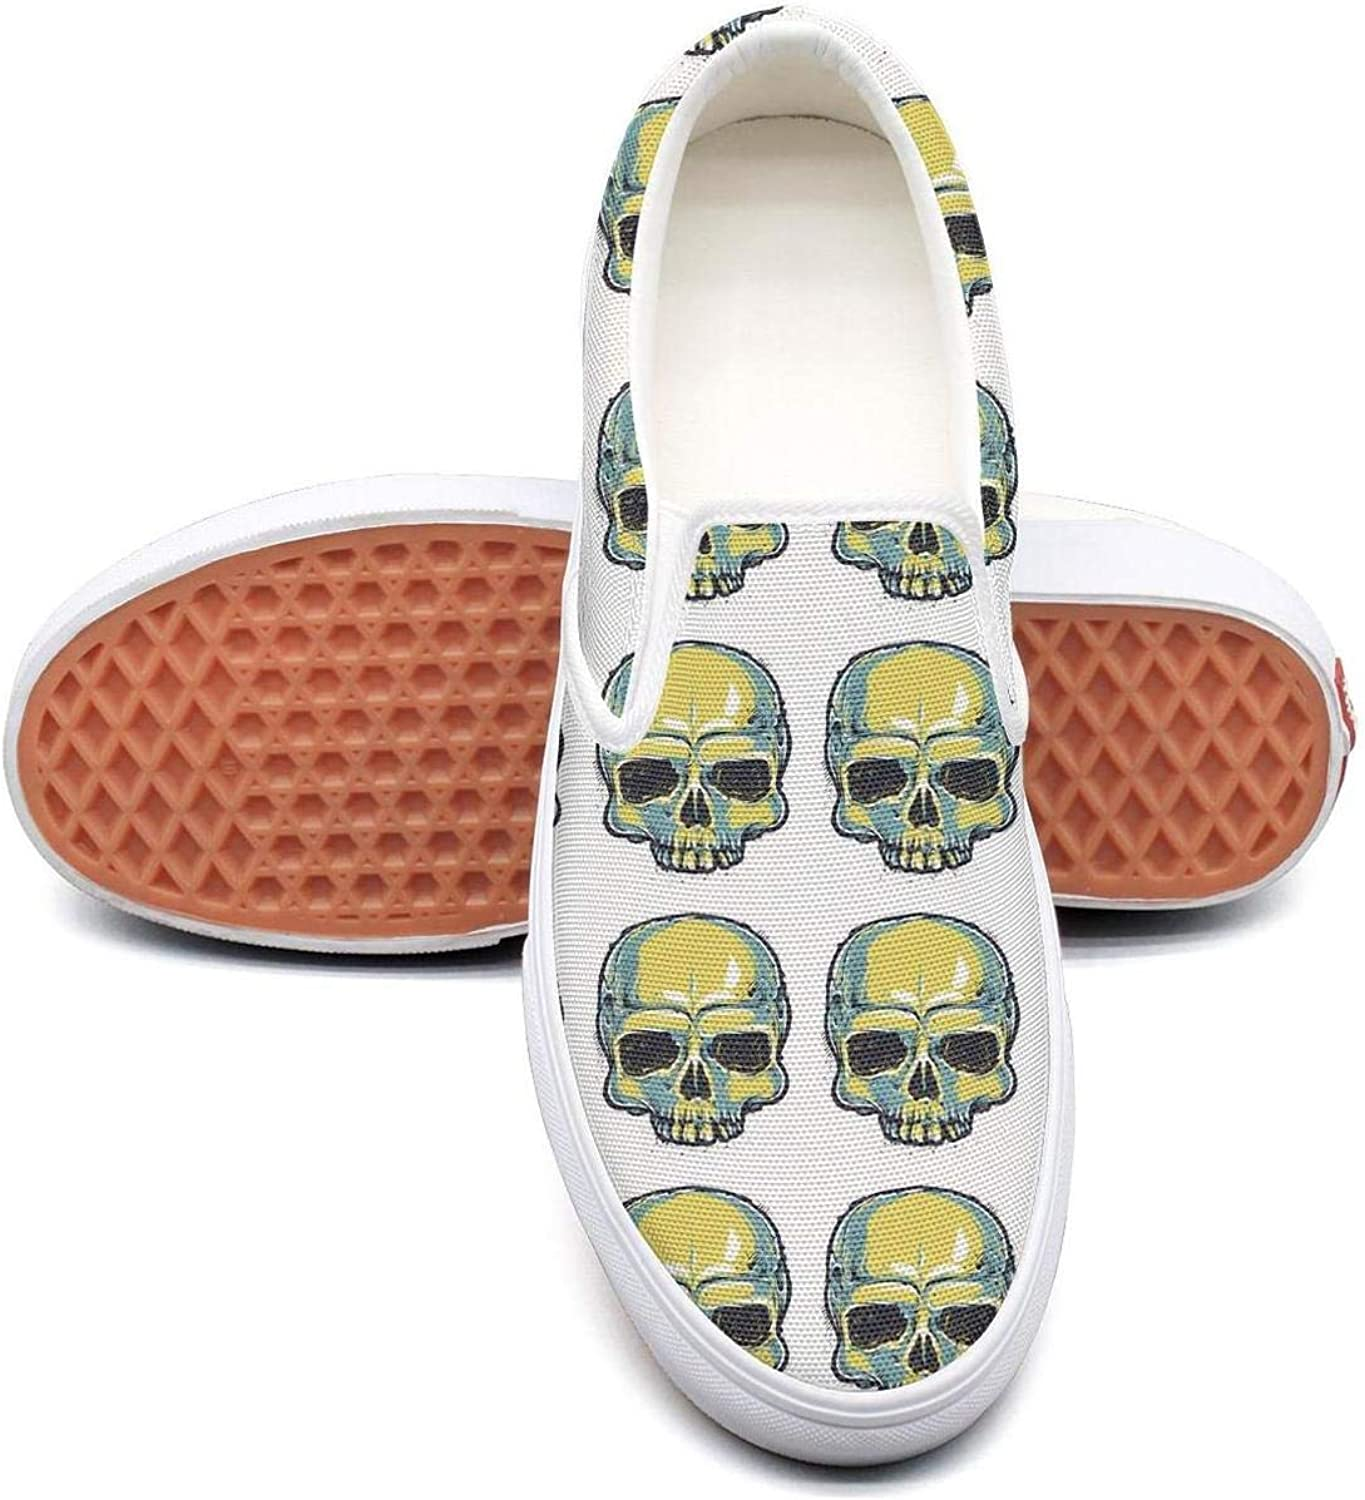 Skull Skull Want U Slip On Canvas Upper Sneakers Painted Canvas Shoes Casual Shoe for Women Fashion